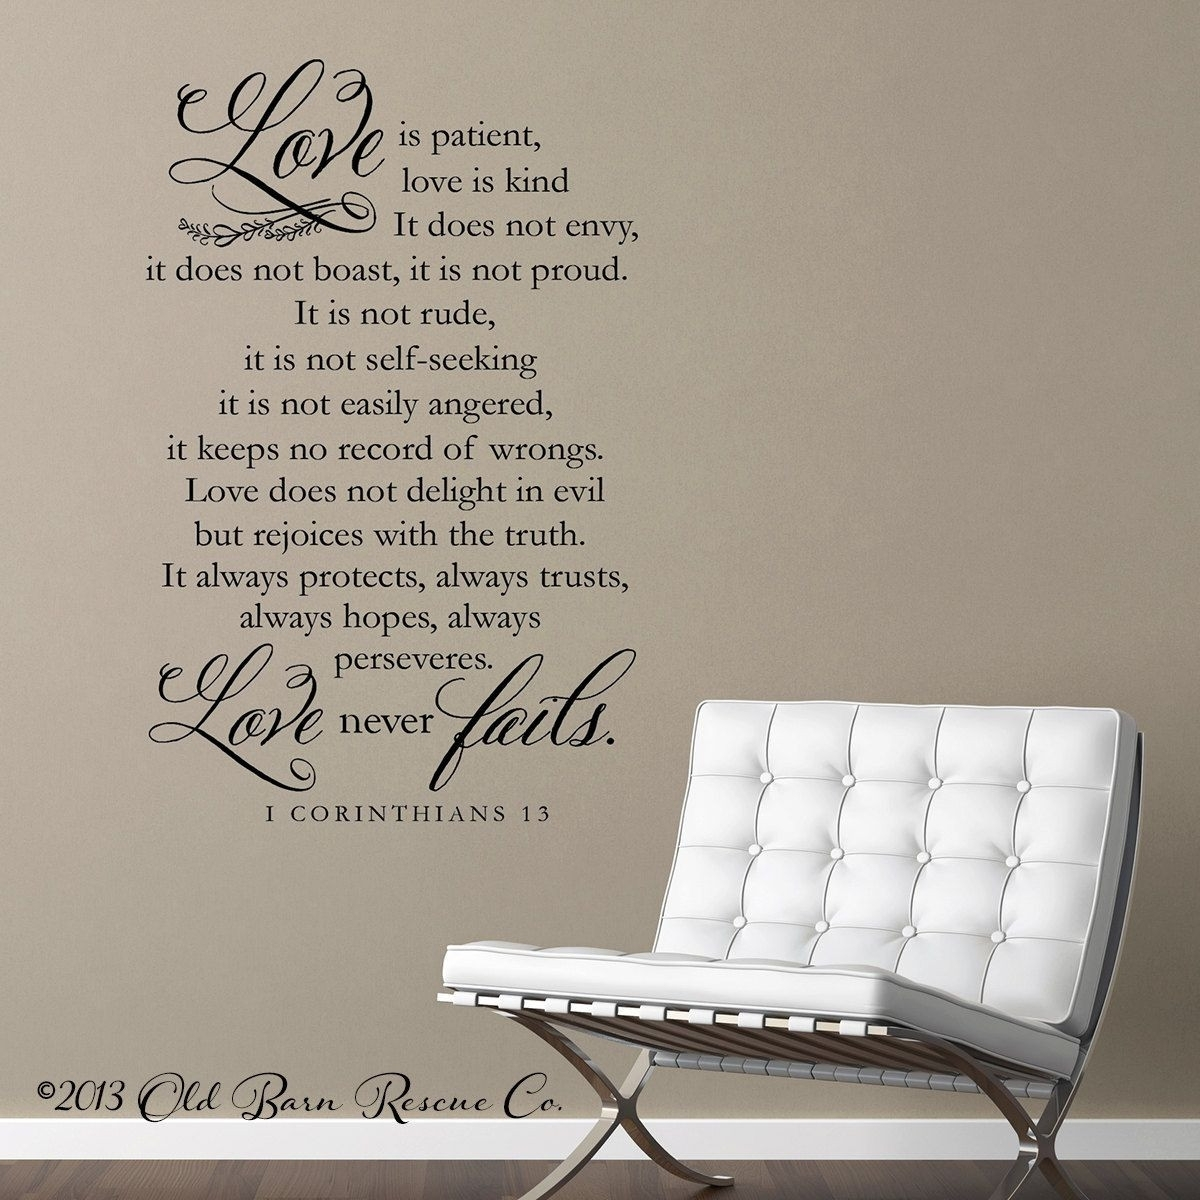 Appealing Wall Art Decor Ideas Sofa Corinthians Chair White Pict Of Regarding Most Recent Love Is Patient Wall Art (View 11 of 20)